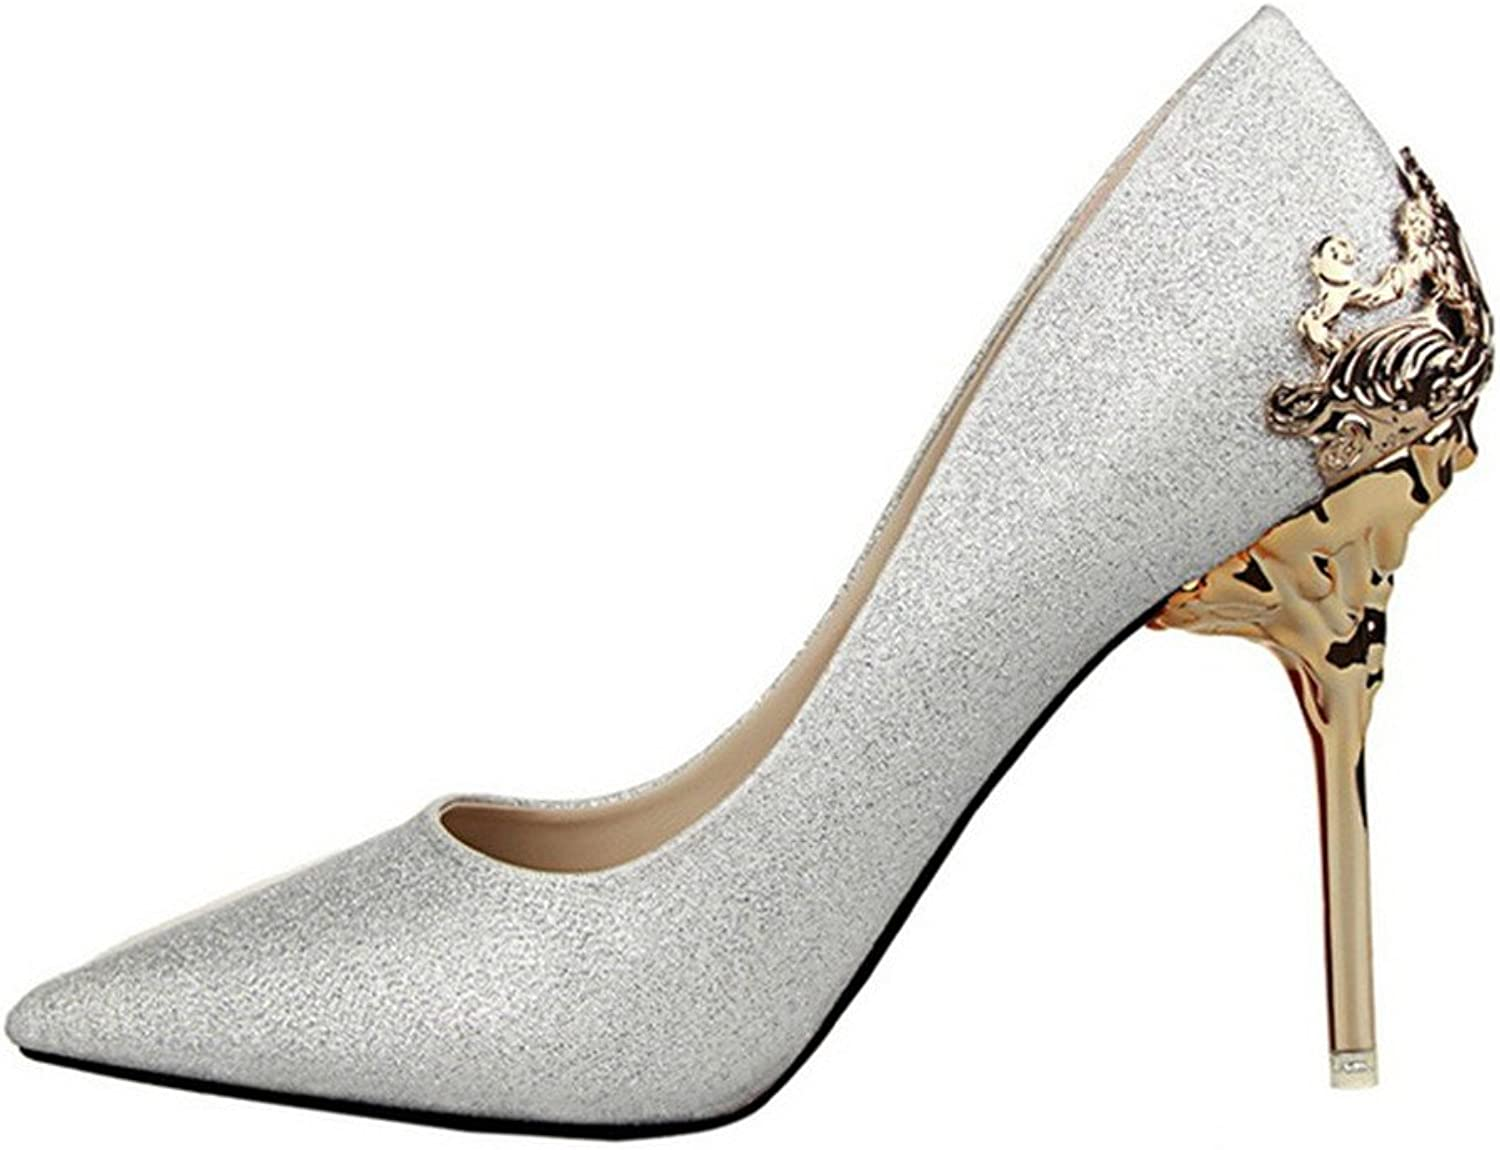 Lady's Pointed-toe pump shoes Silver color